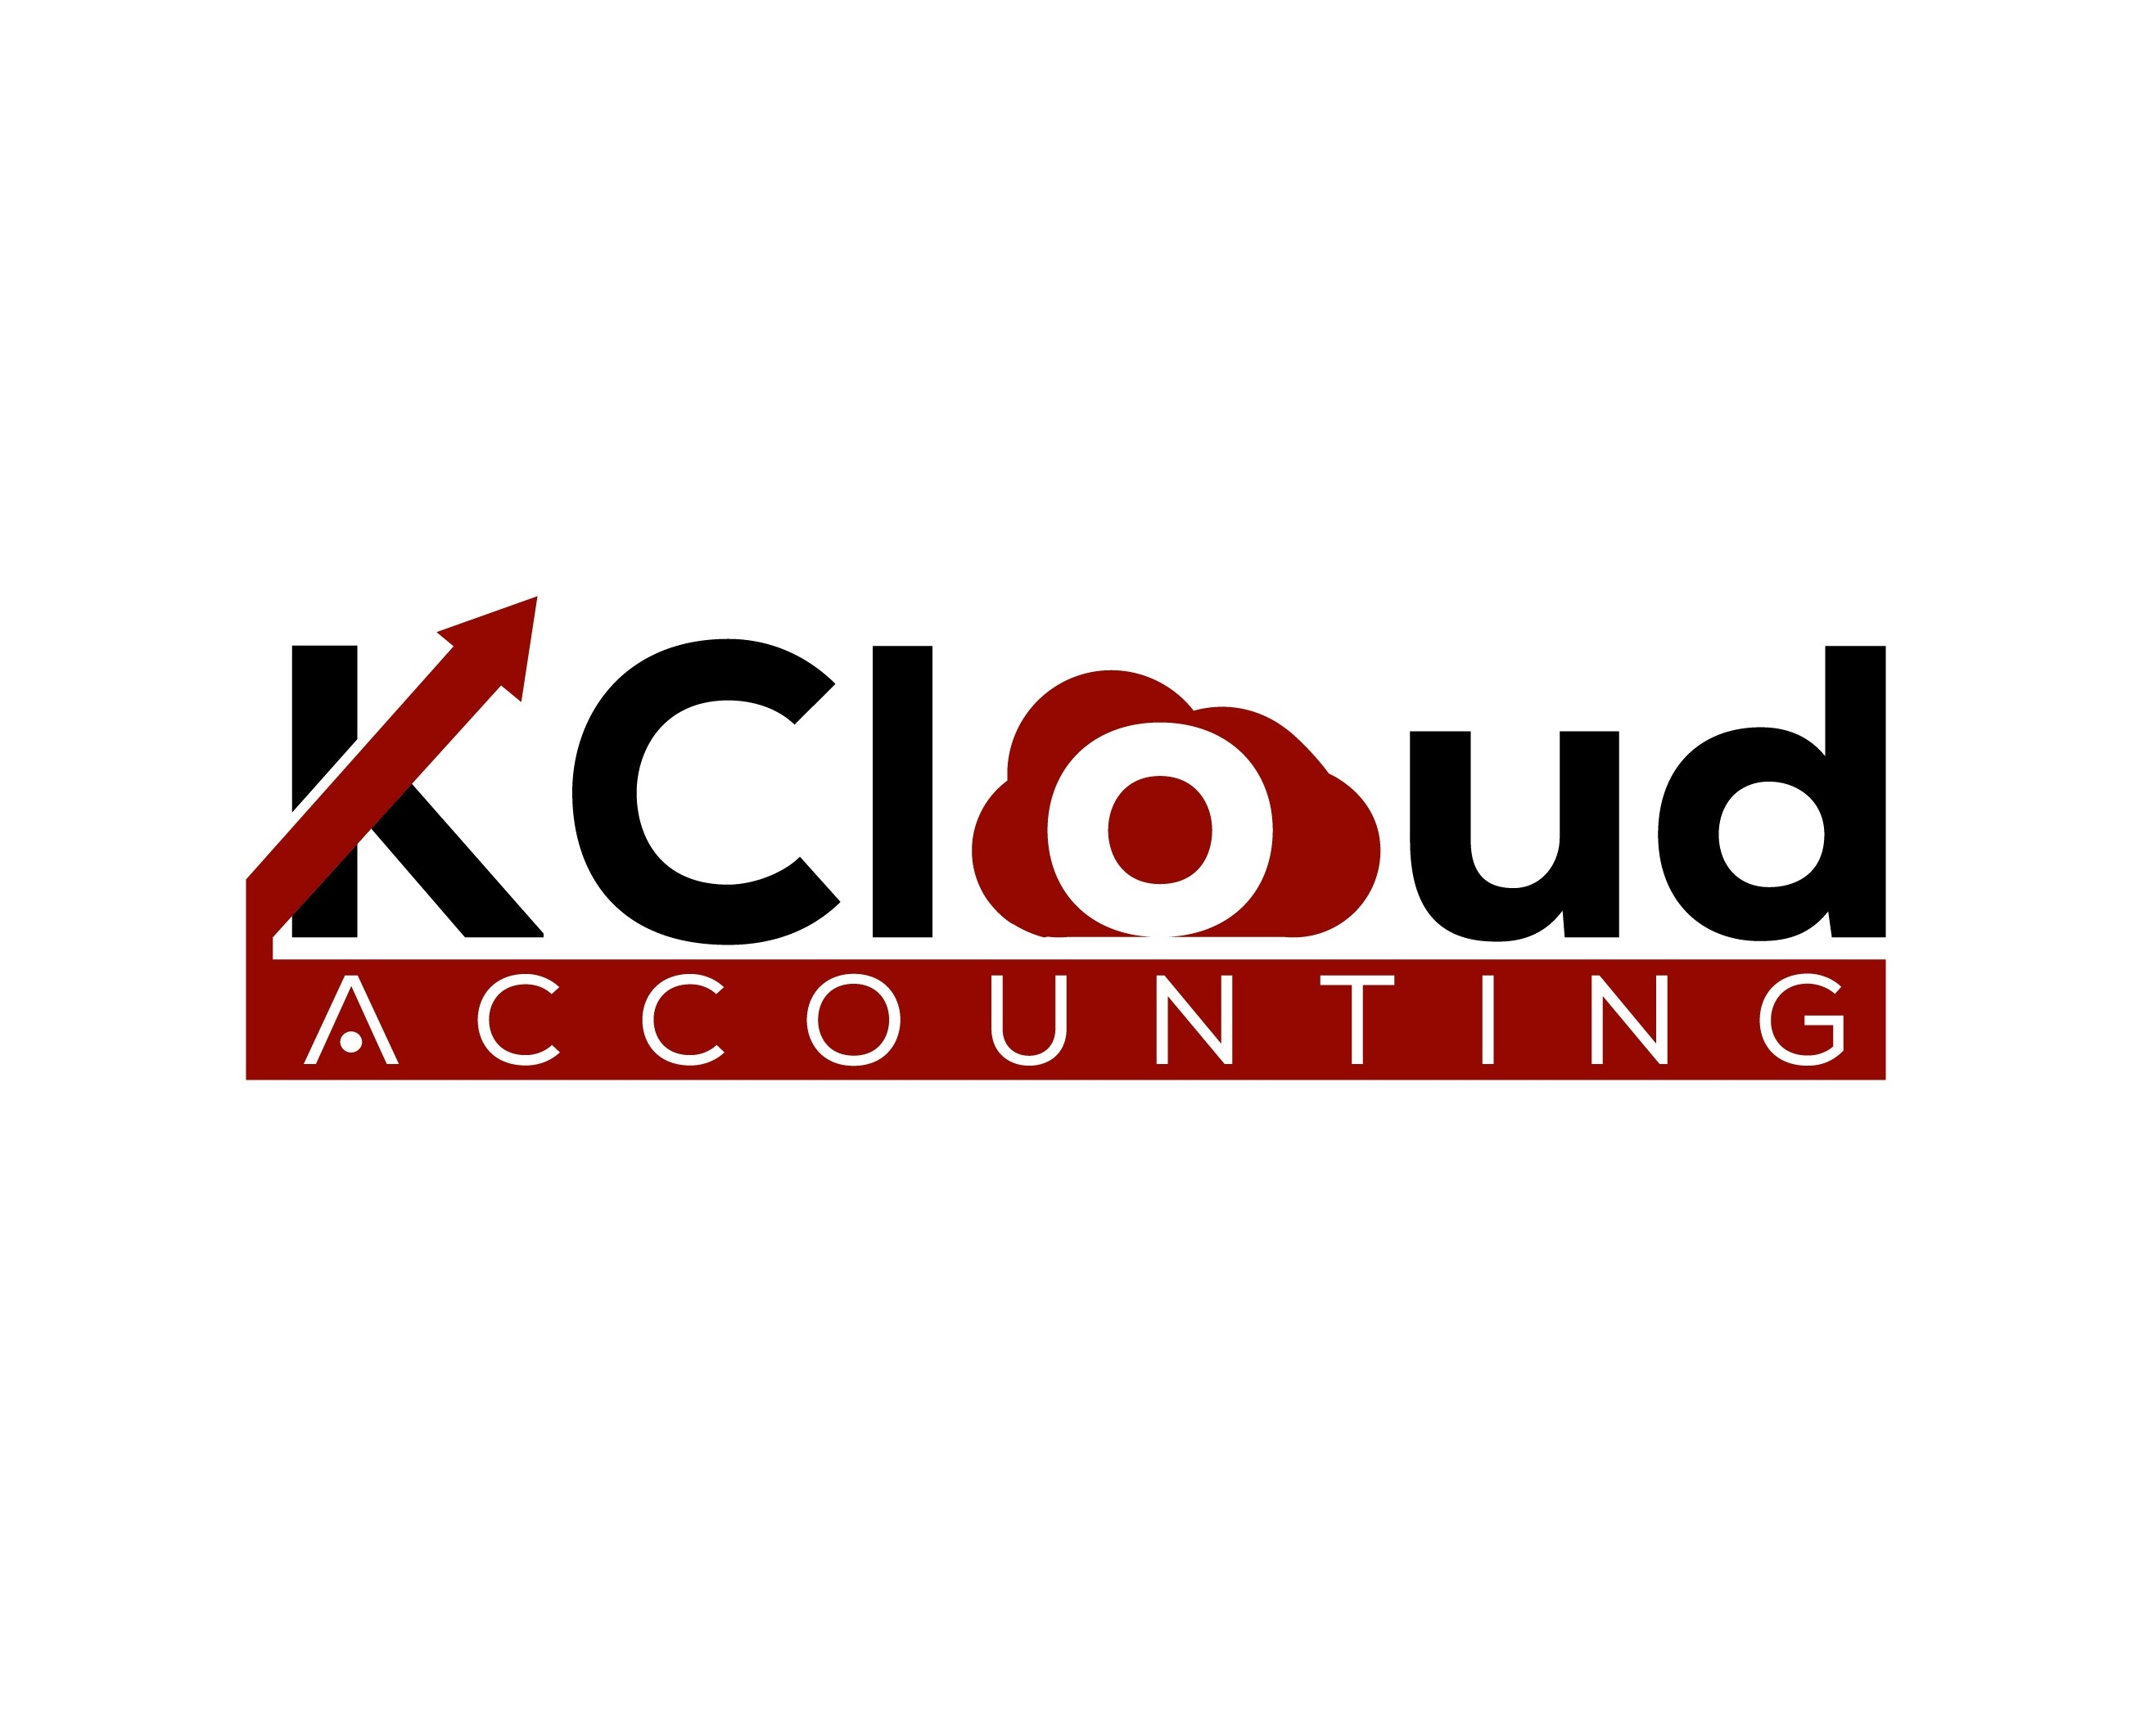 k cloud accounting